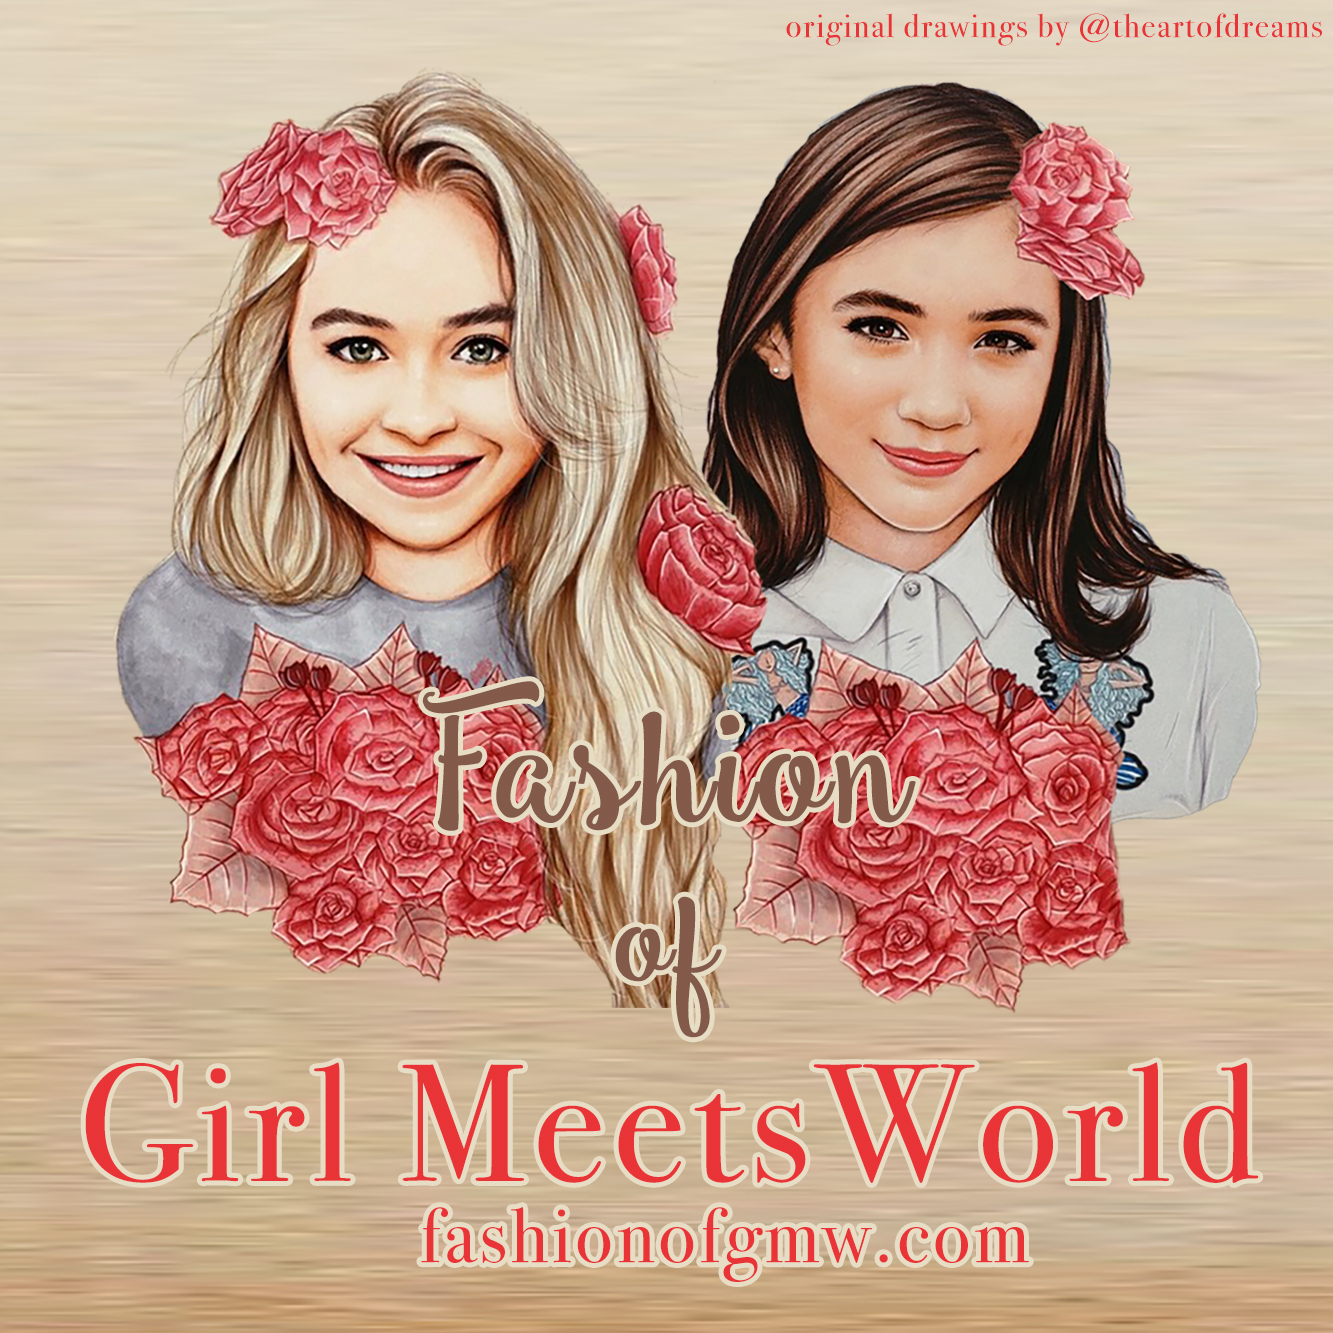 girl meets world fashion There are 1255 games related to girl meets world fashion on 4jcom click to play these games online for free, enjoy.